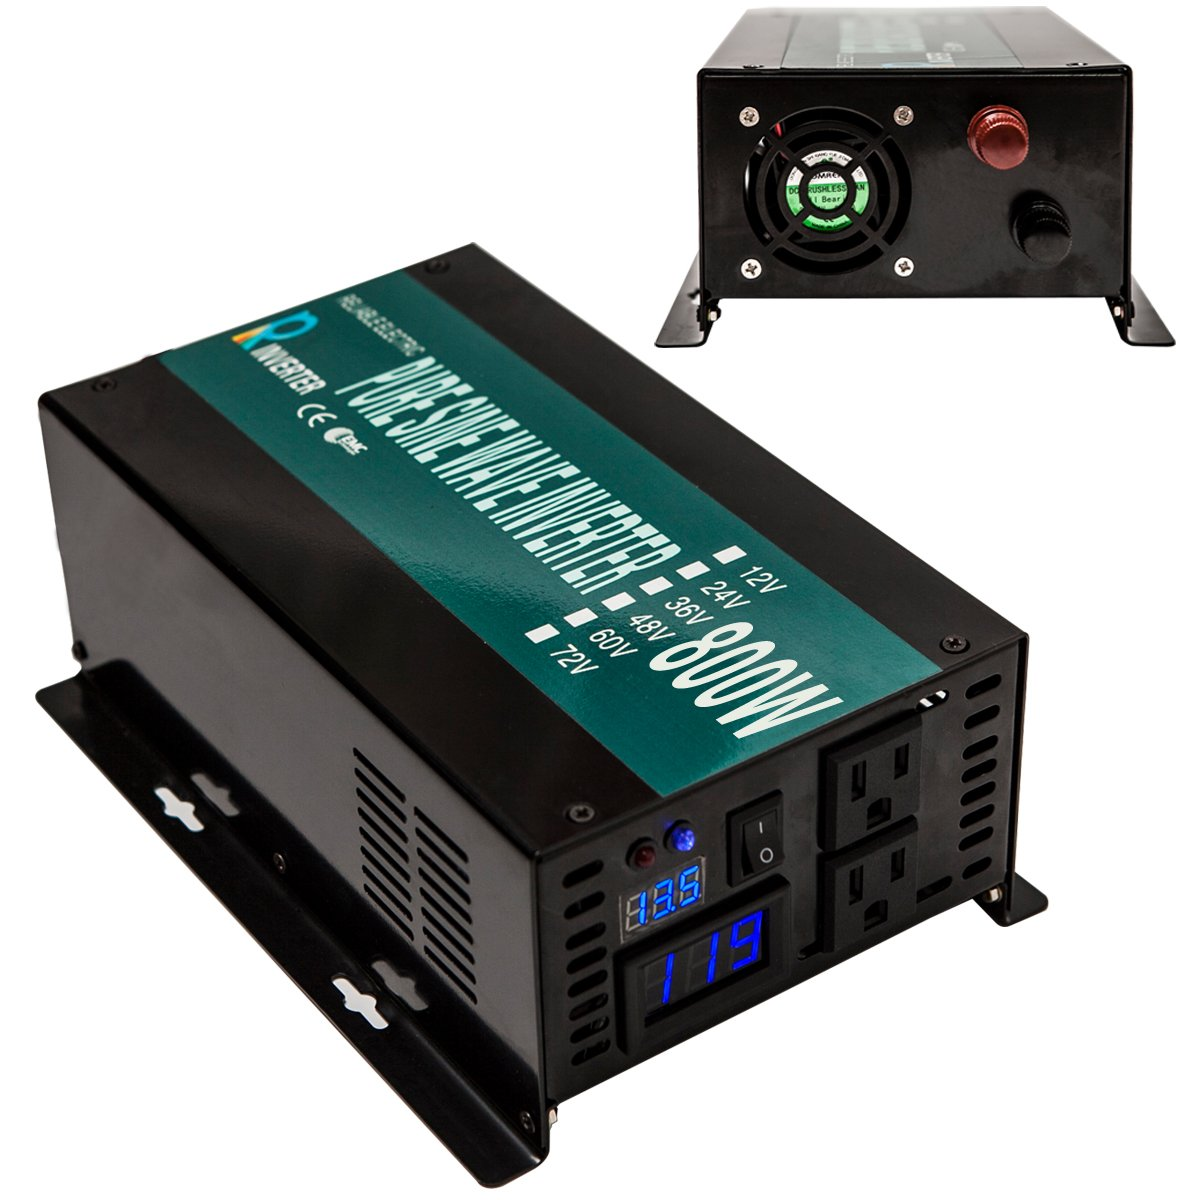 Reliable 800W LED Display Home Generator True Pure Sine Wave Solar Power Inverter Off Grid DC to AC 24V 120V Converter (Black) by WZRELB (Image #6)